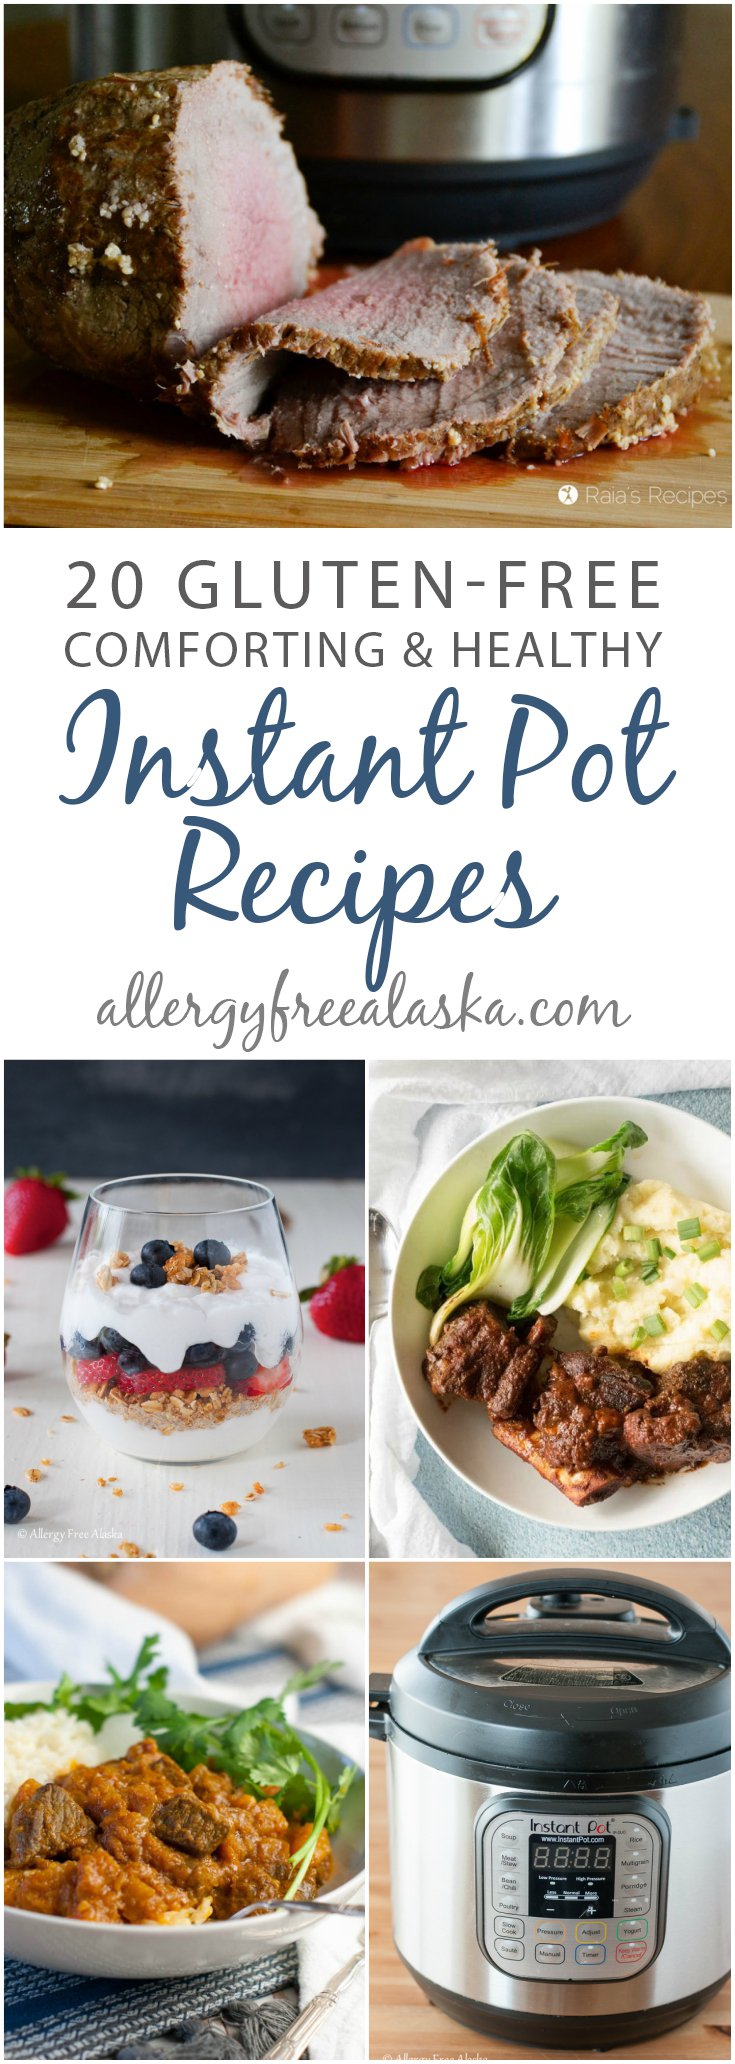 If your days are busy, or you just need a quick and comforting meal, these 20 comforting and healthy gluten-free Instant Pot recipes are for you! #instantpot #gutenfree #comfortfood #healthy #delicious #realfood #paleo #dairyfree #vegan